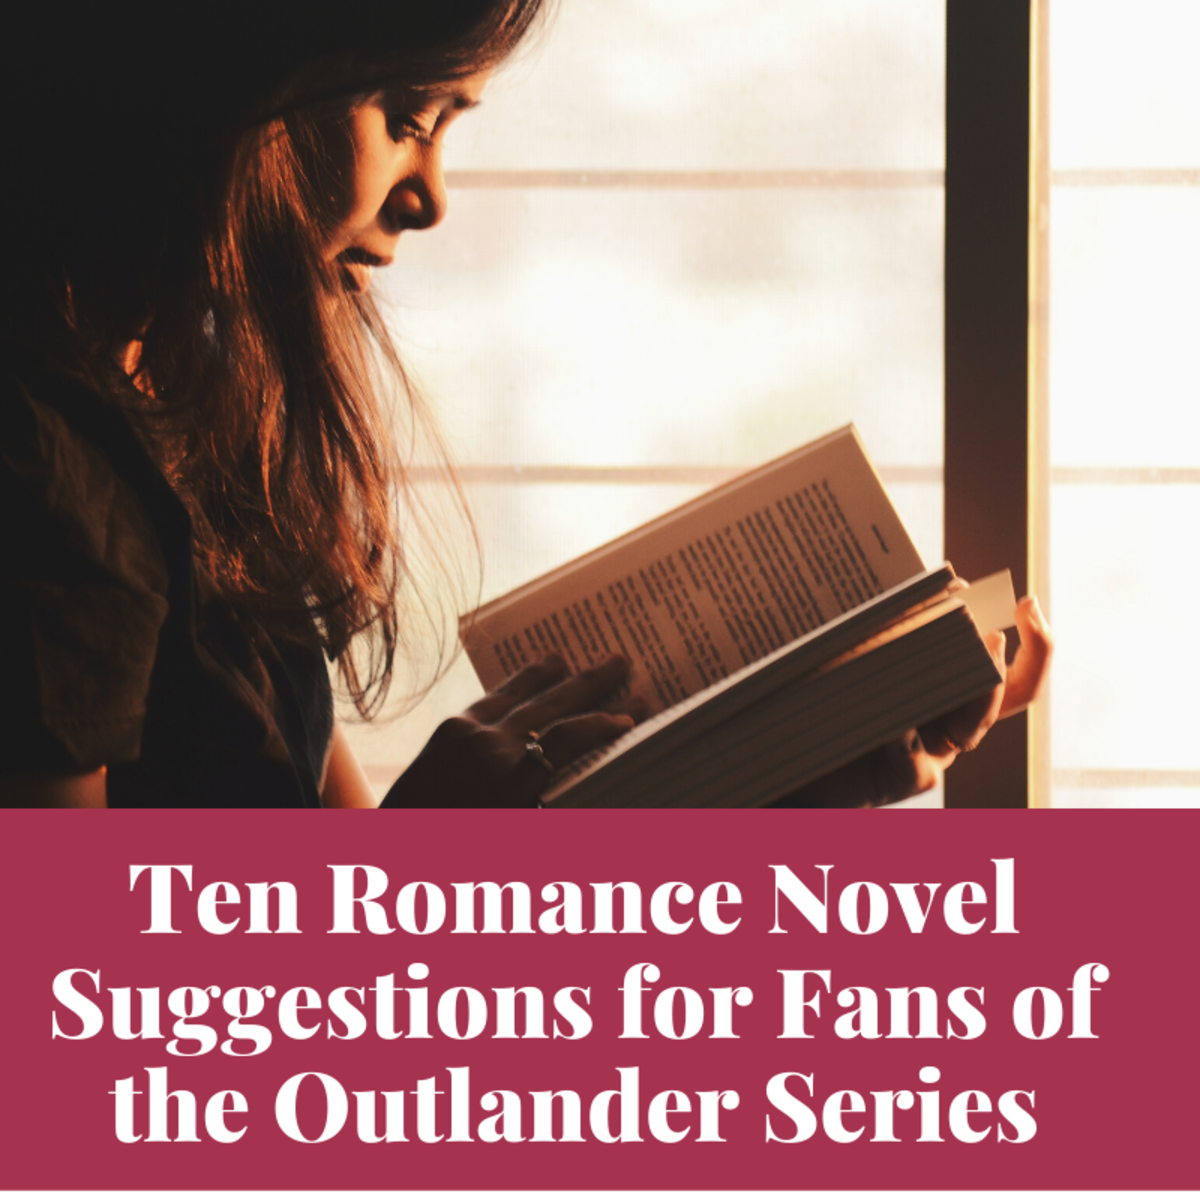 The Ten Best Time Travel Romance Novels for Fans of Outlander